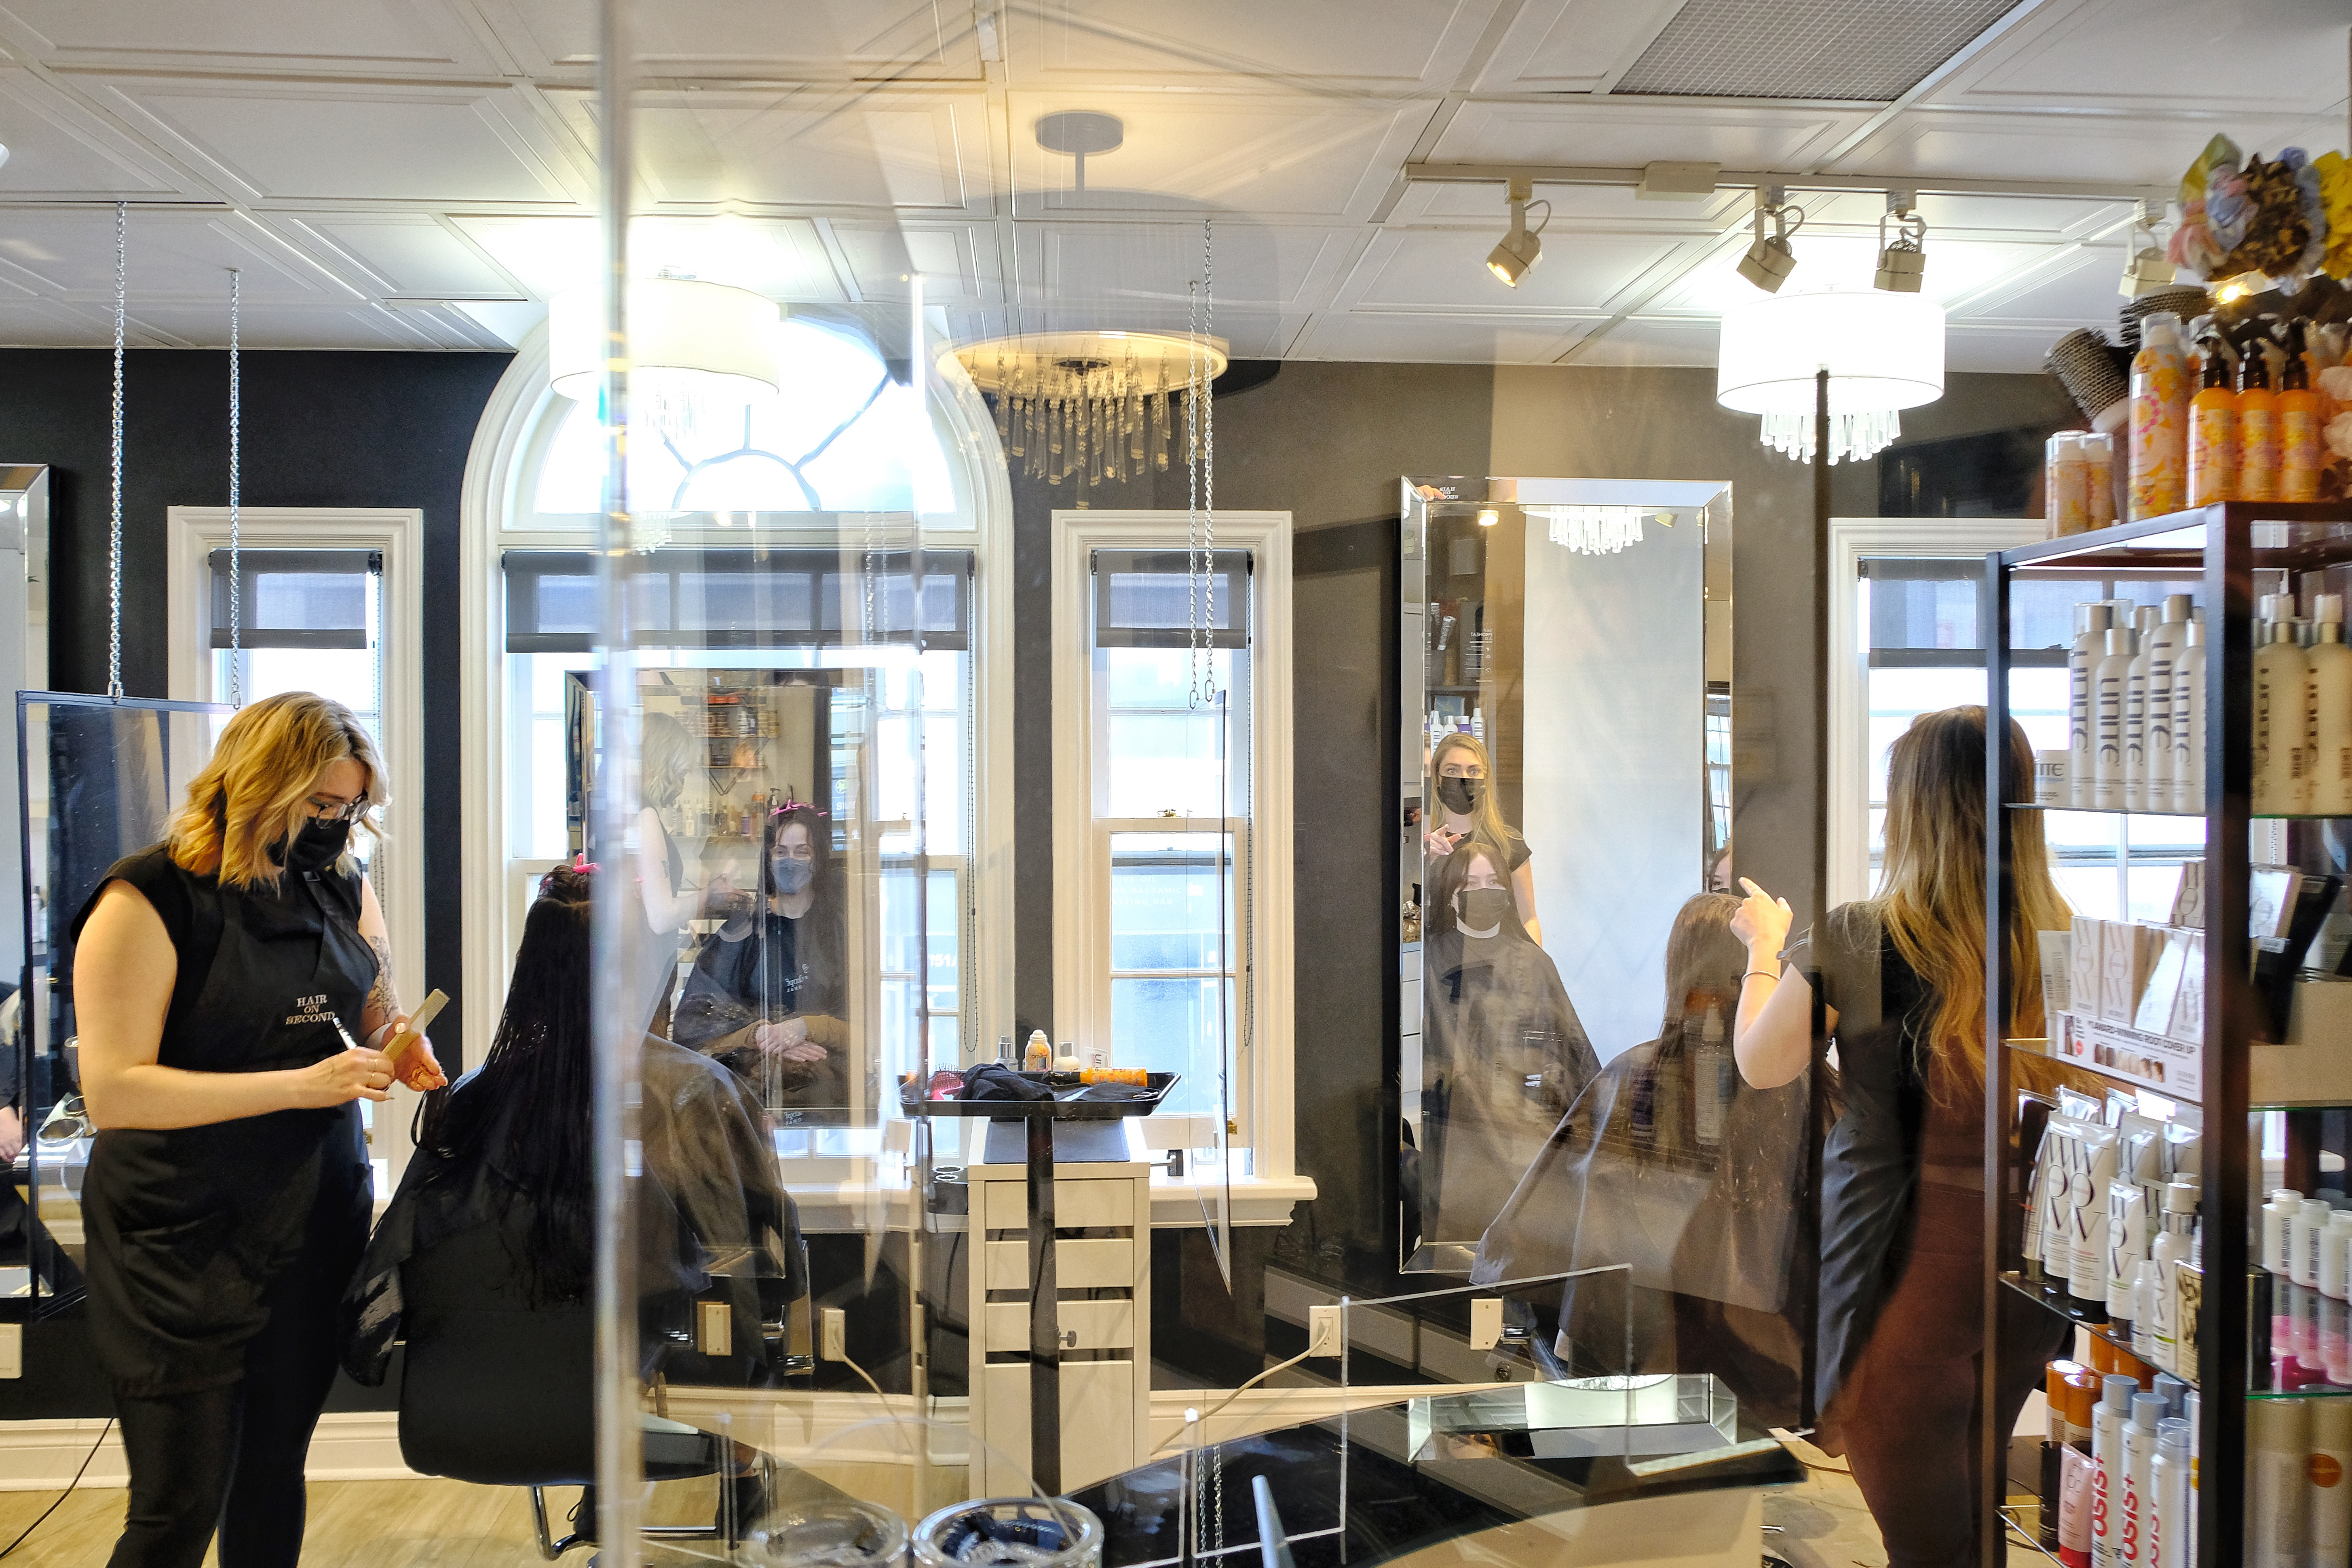 Get your hair did! Barber Shops and Hair Salons open this week in the Glebe